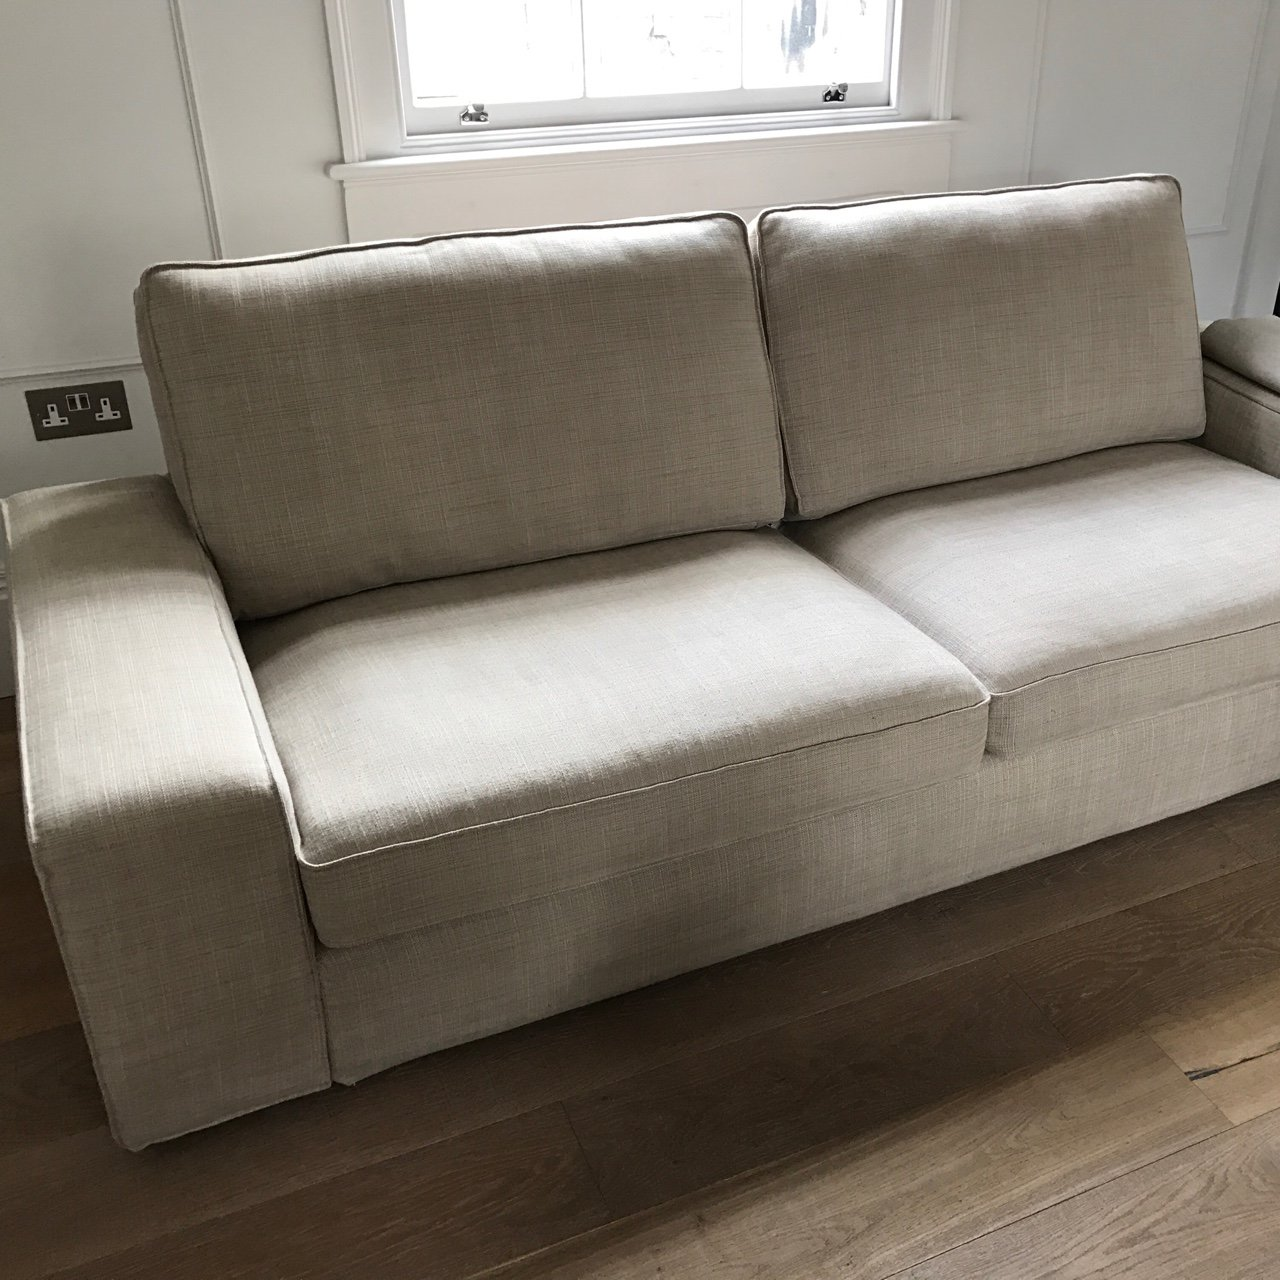 Ikea Kivik Sofa Listed On Depop By Edouarddm